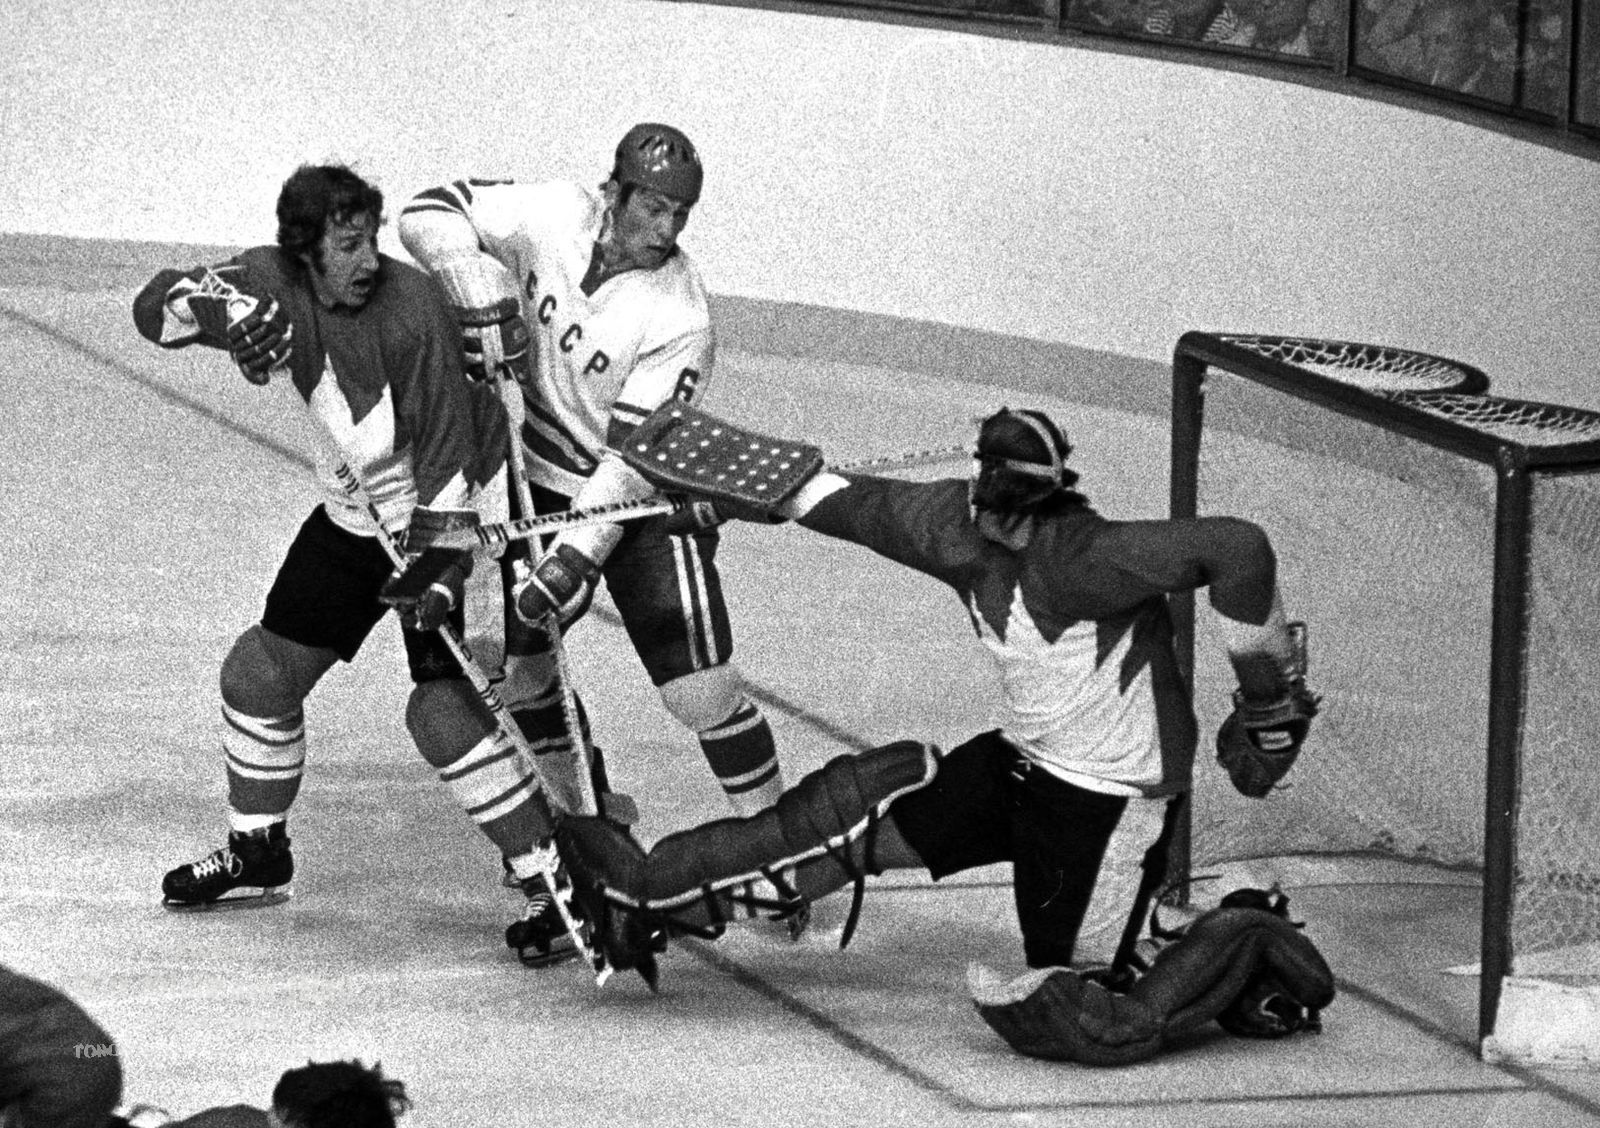 Team Canada goalie Ken Dryden and defenseman Rod Seiling combine to block scoring attempt by Soviet defenceman Valery Vasiliev in the Sept 8, 1972 game of the Canada-U.S.S.R. hockey series. Their on-ice performance has immortalized Team Canada as Canada's sports team of the century, according to a survey of newspaper editors and broadcasters conducted by The Canadian Press and Broadcast News. (CP PHOTO/Peter Bregg)